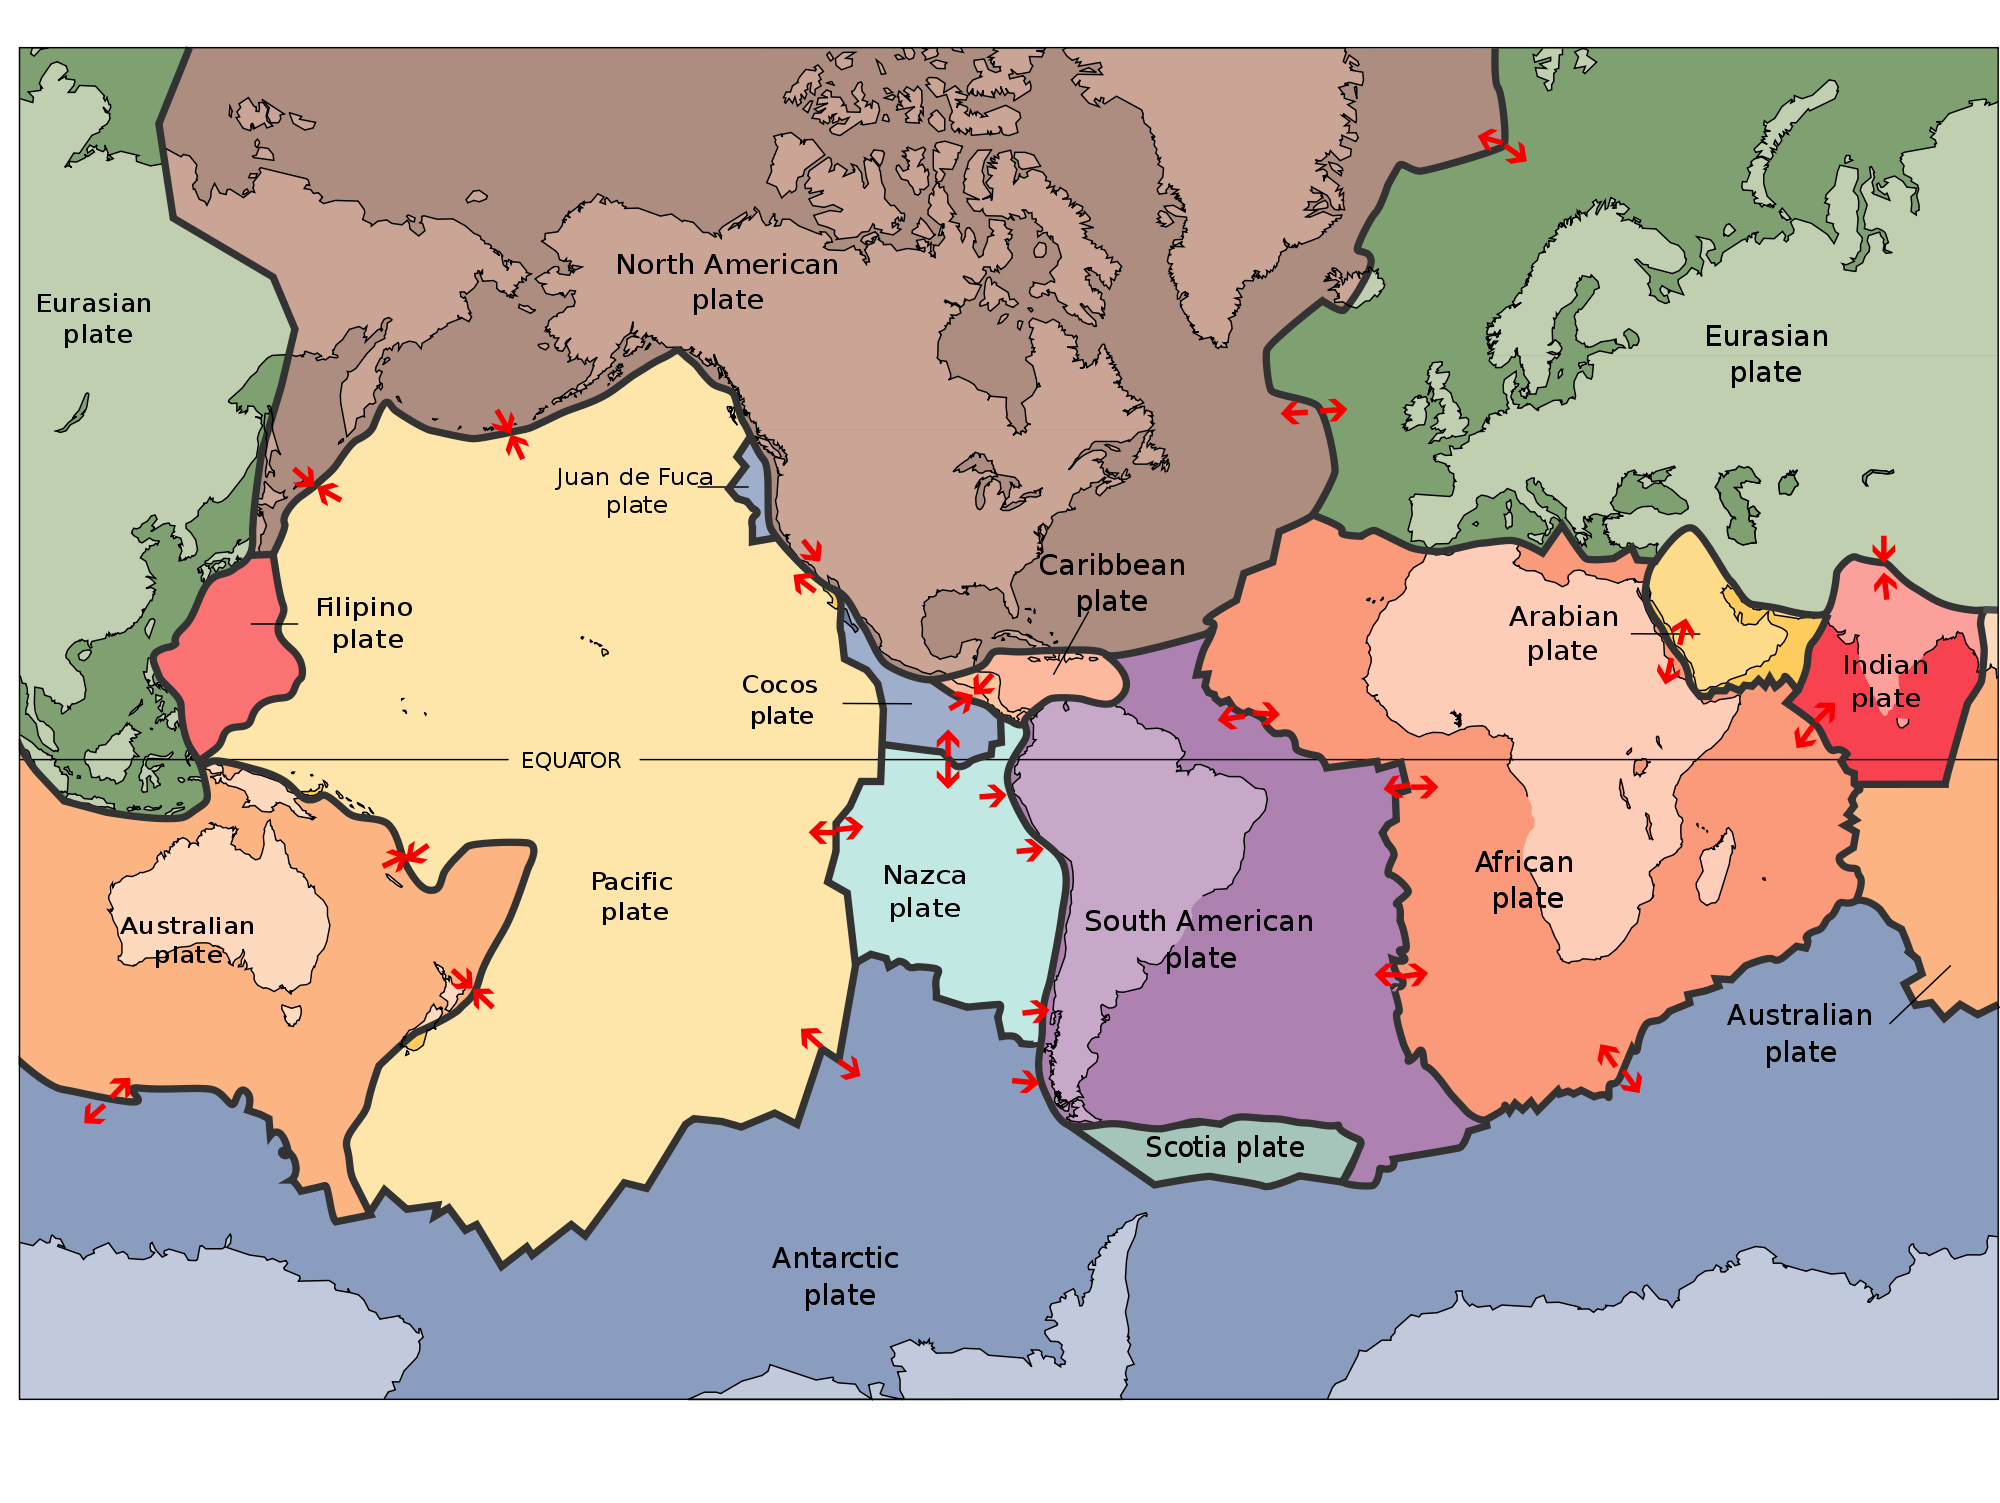 1000+ images about Plate Tectonics on Pinterest.